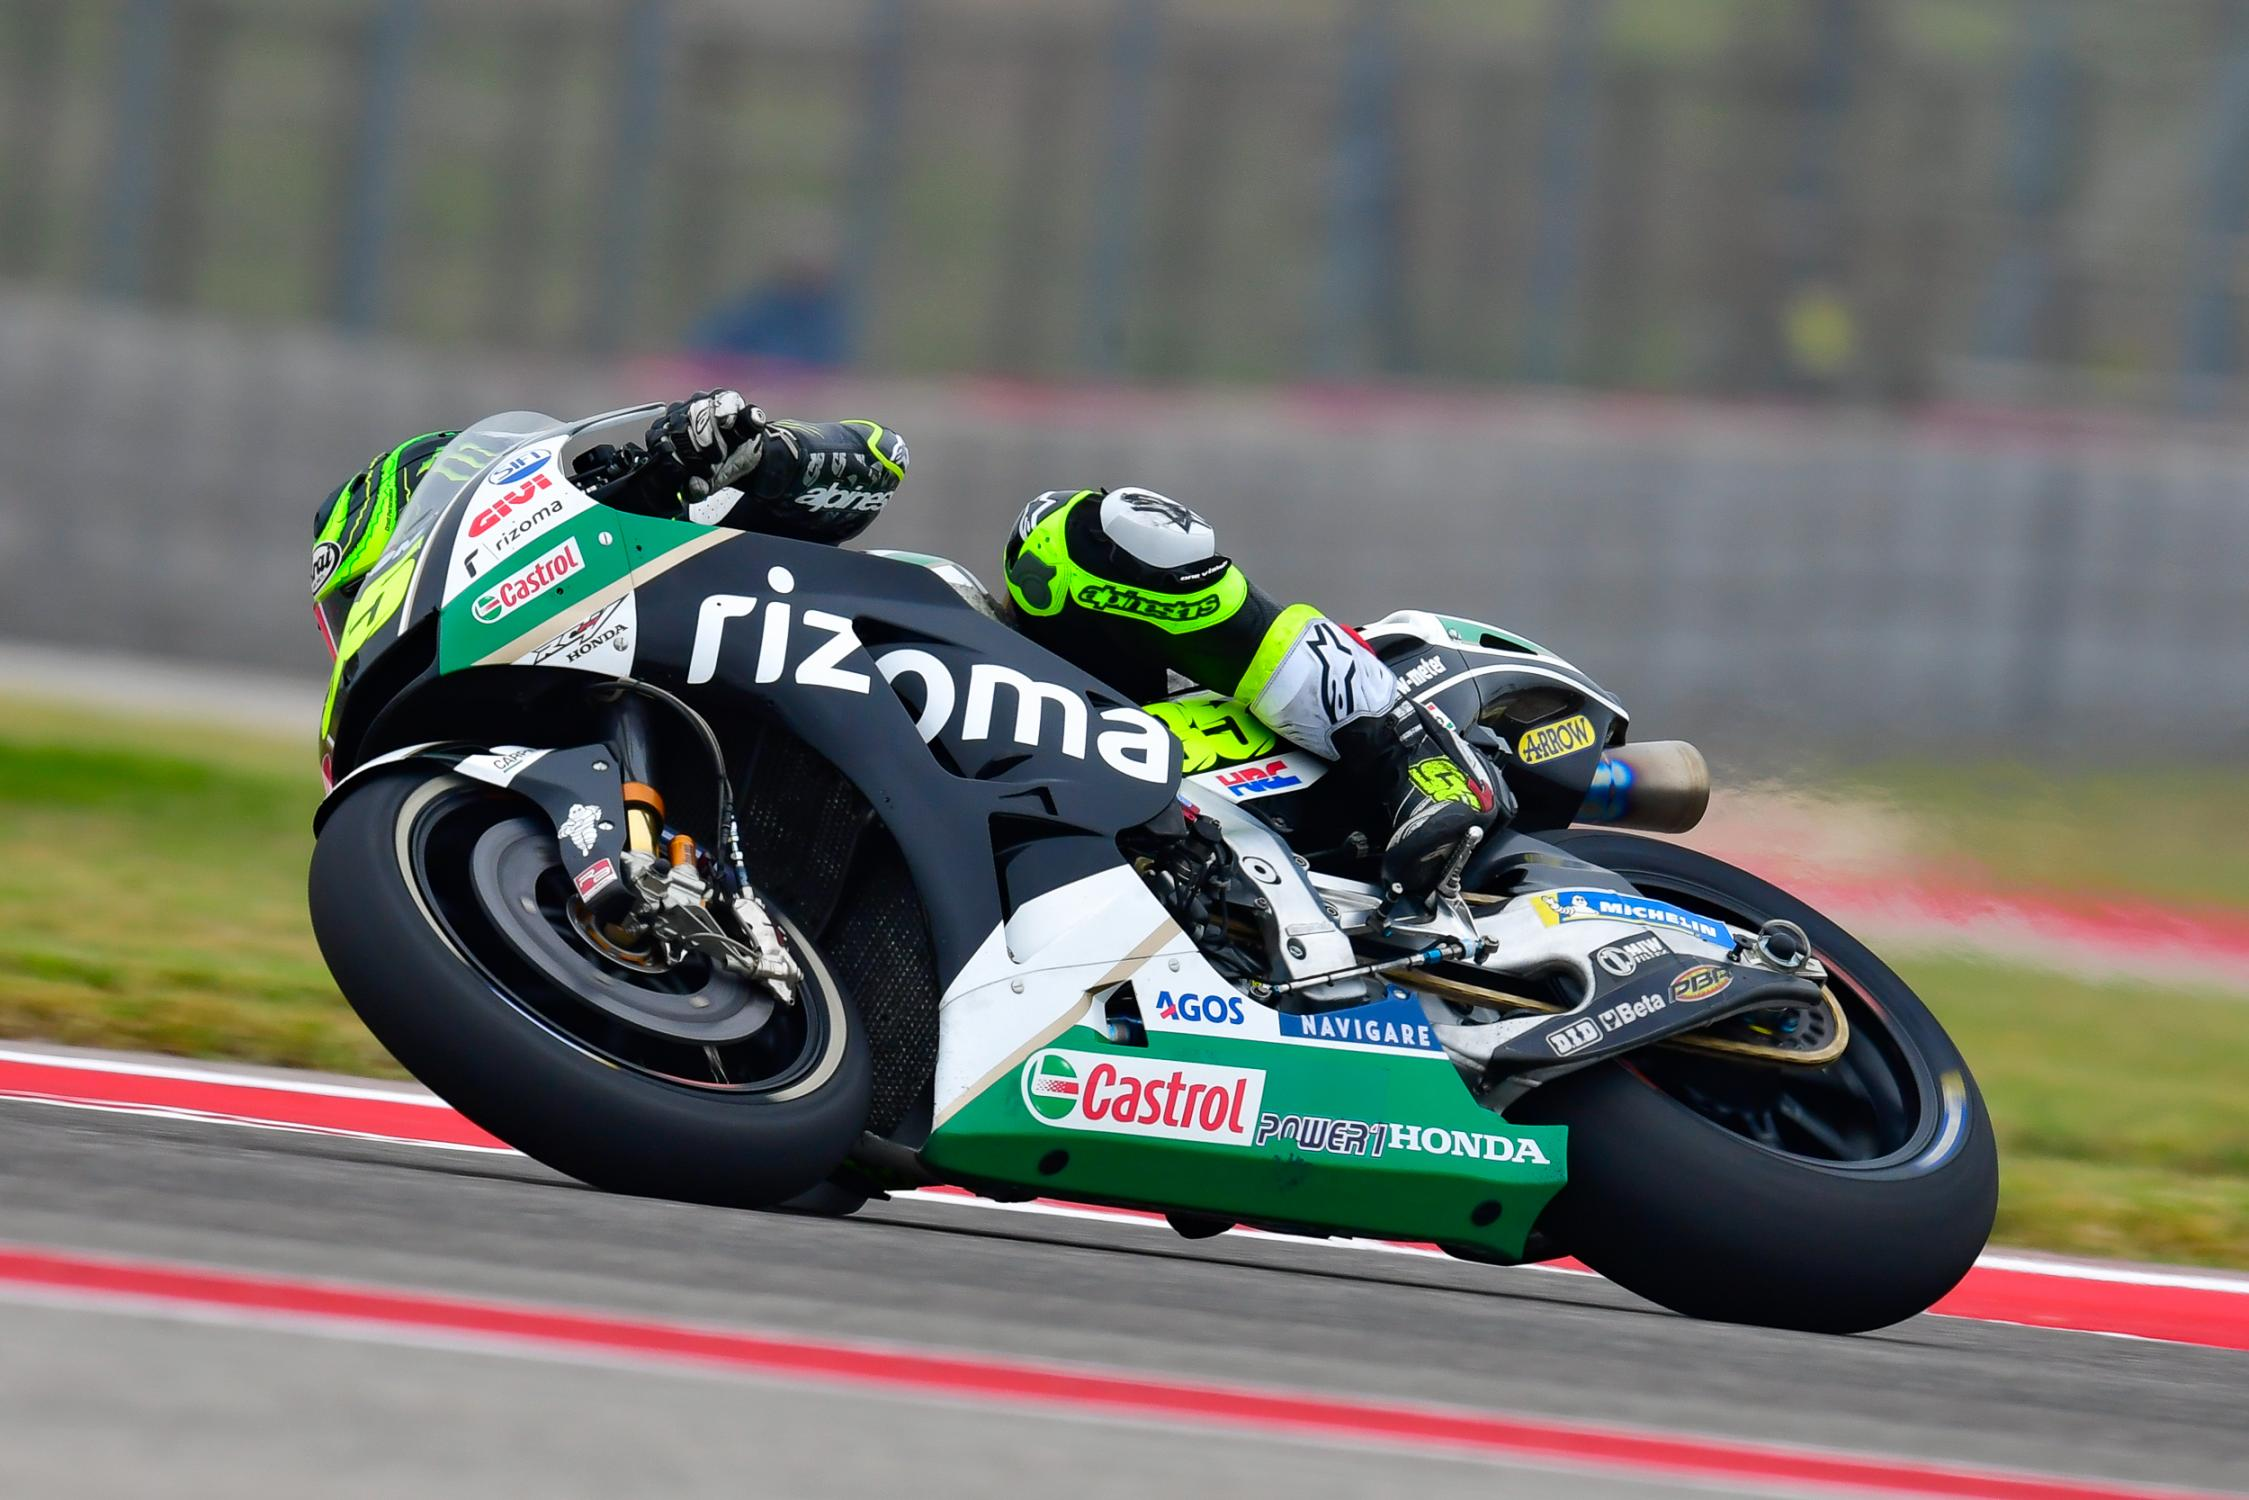 35-cal-crutchlow-eng_ds56000.gallery_full_top_fullscreen.jpg